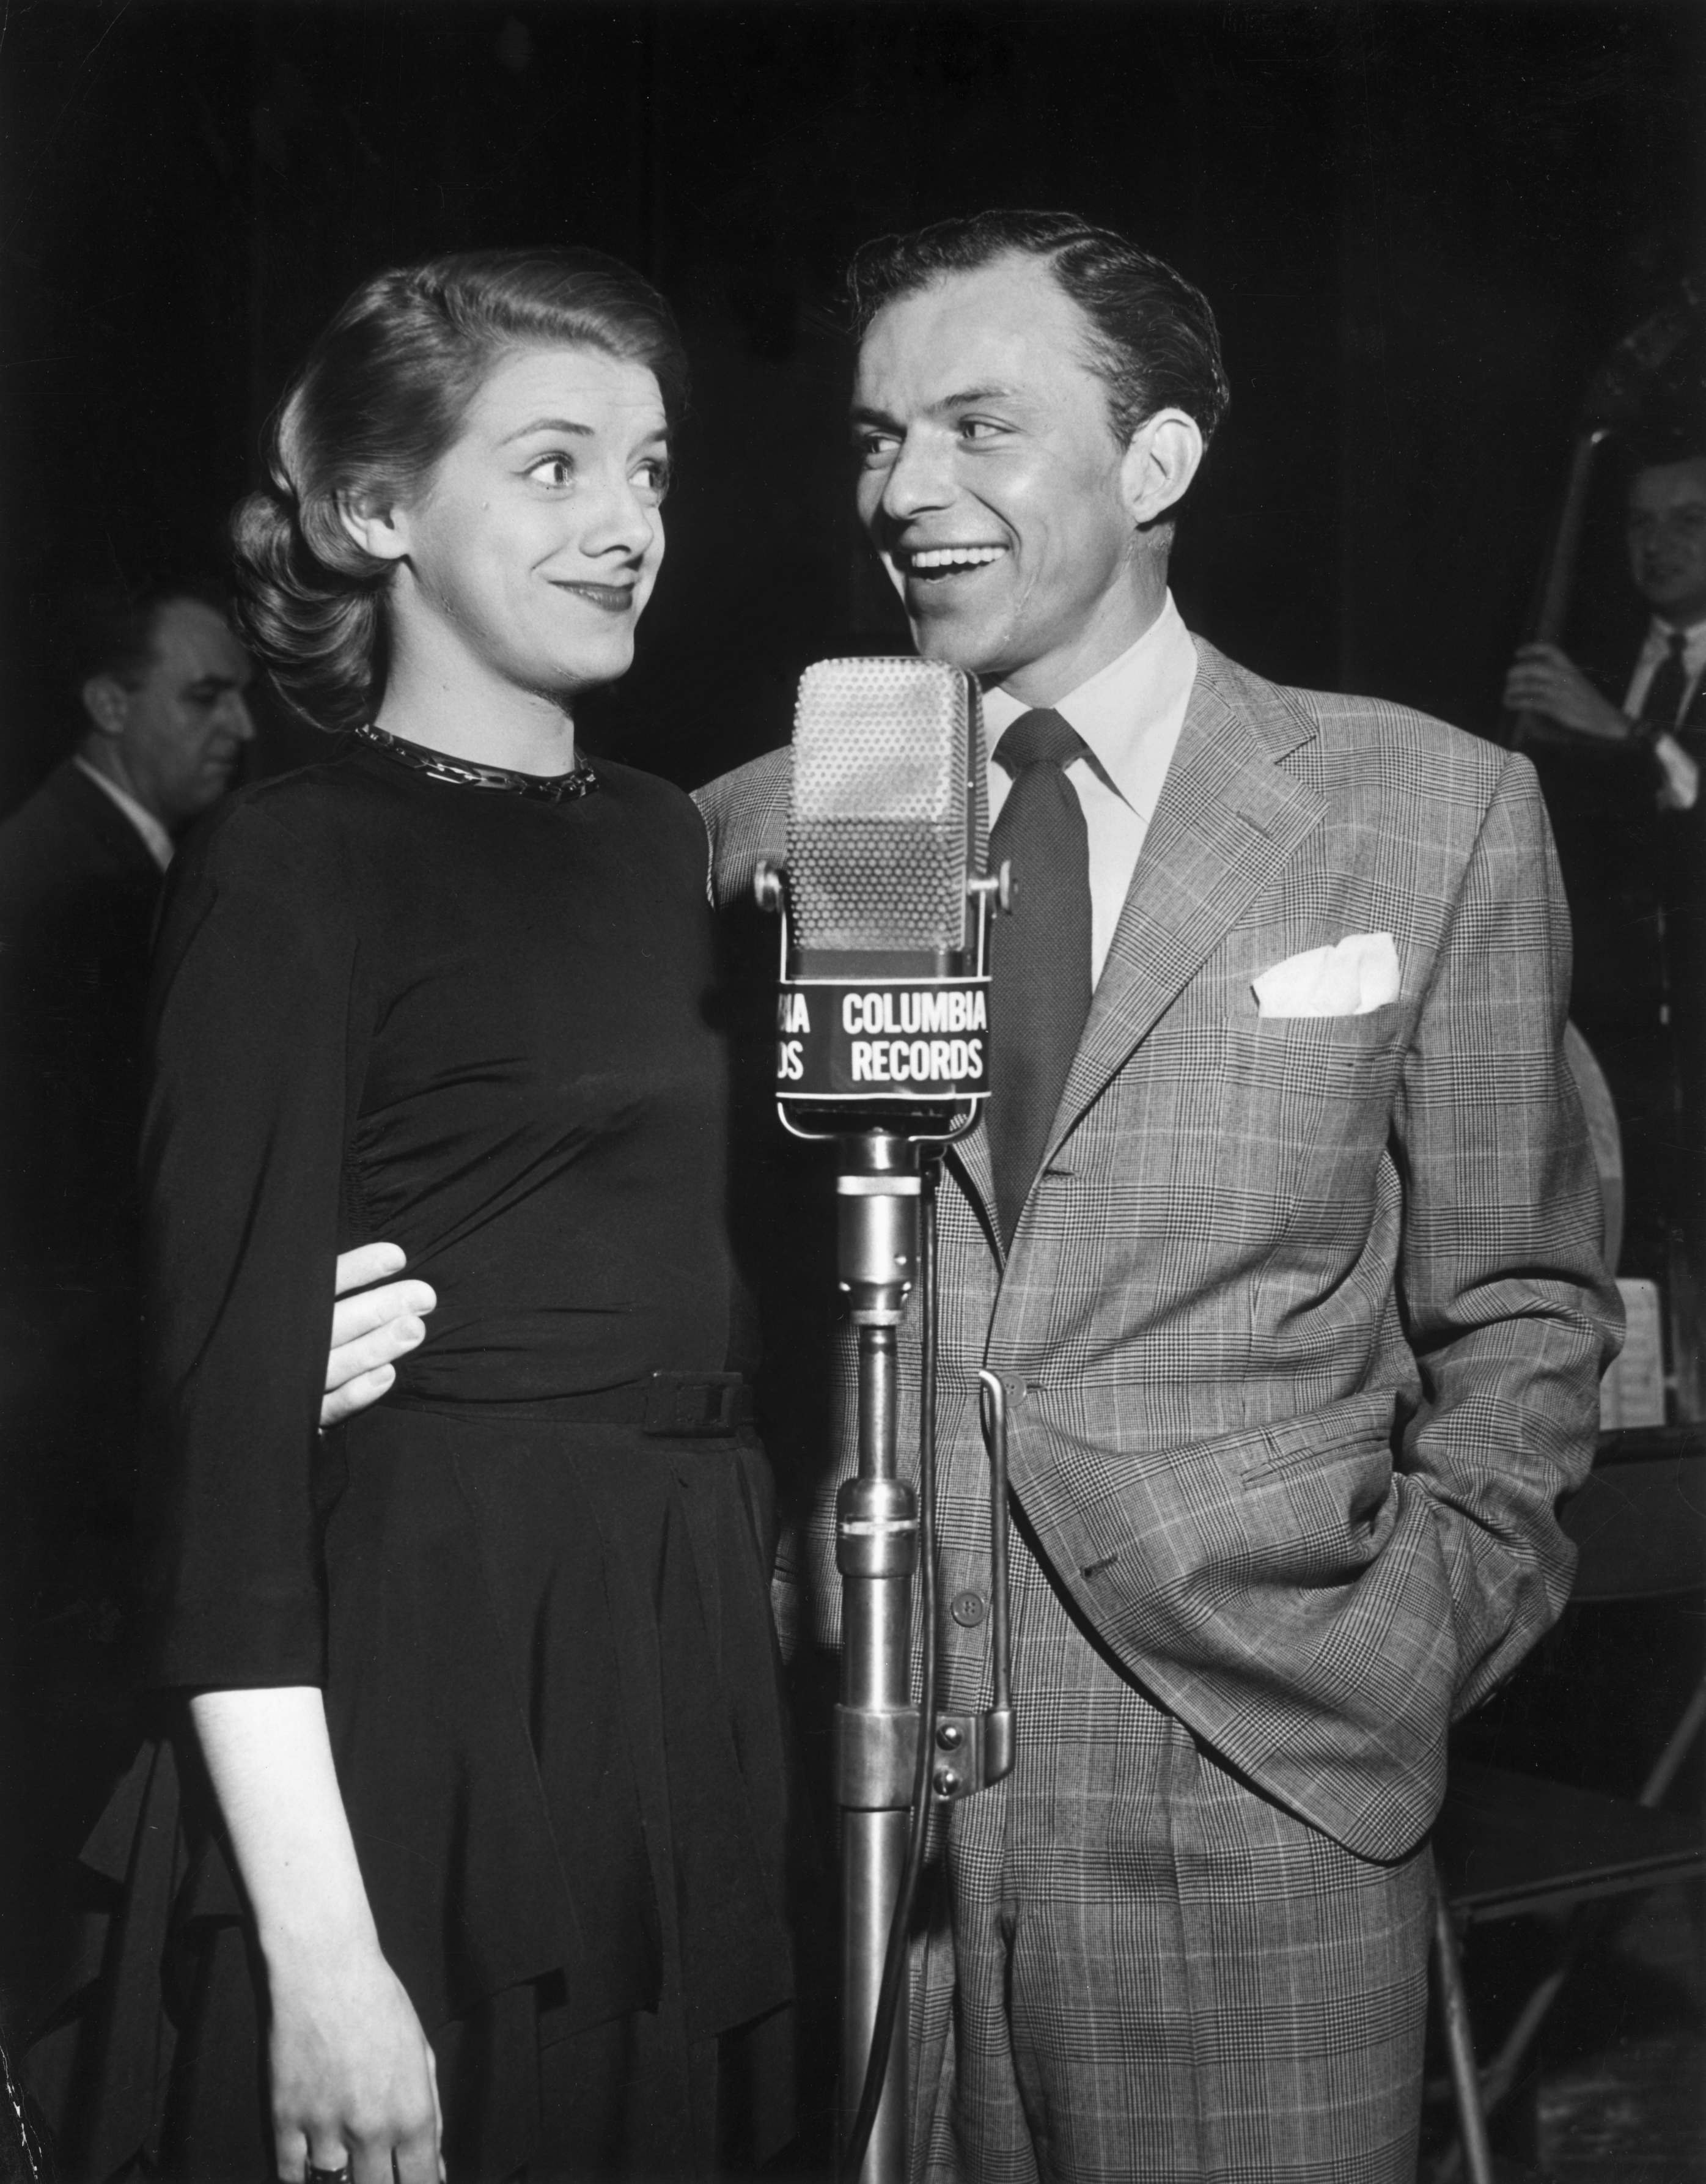 circa 1950: American actors and singers Rosemary Clooney (1928 - 2002) and Frank Sinatra stand together in front of a Columbia Records microphone. Sinatra is smiling and has his arm around Clooney. (Photo by Hulton Archive/Getty Images)